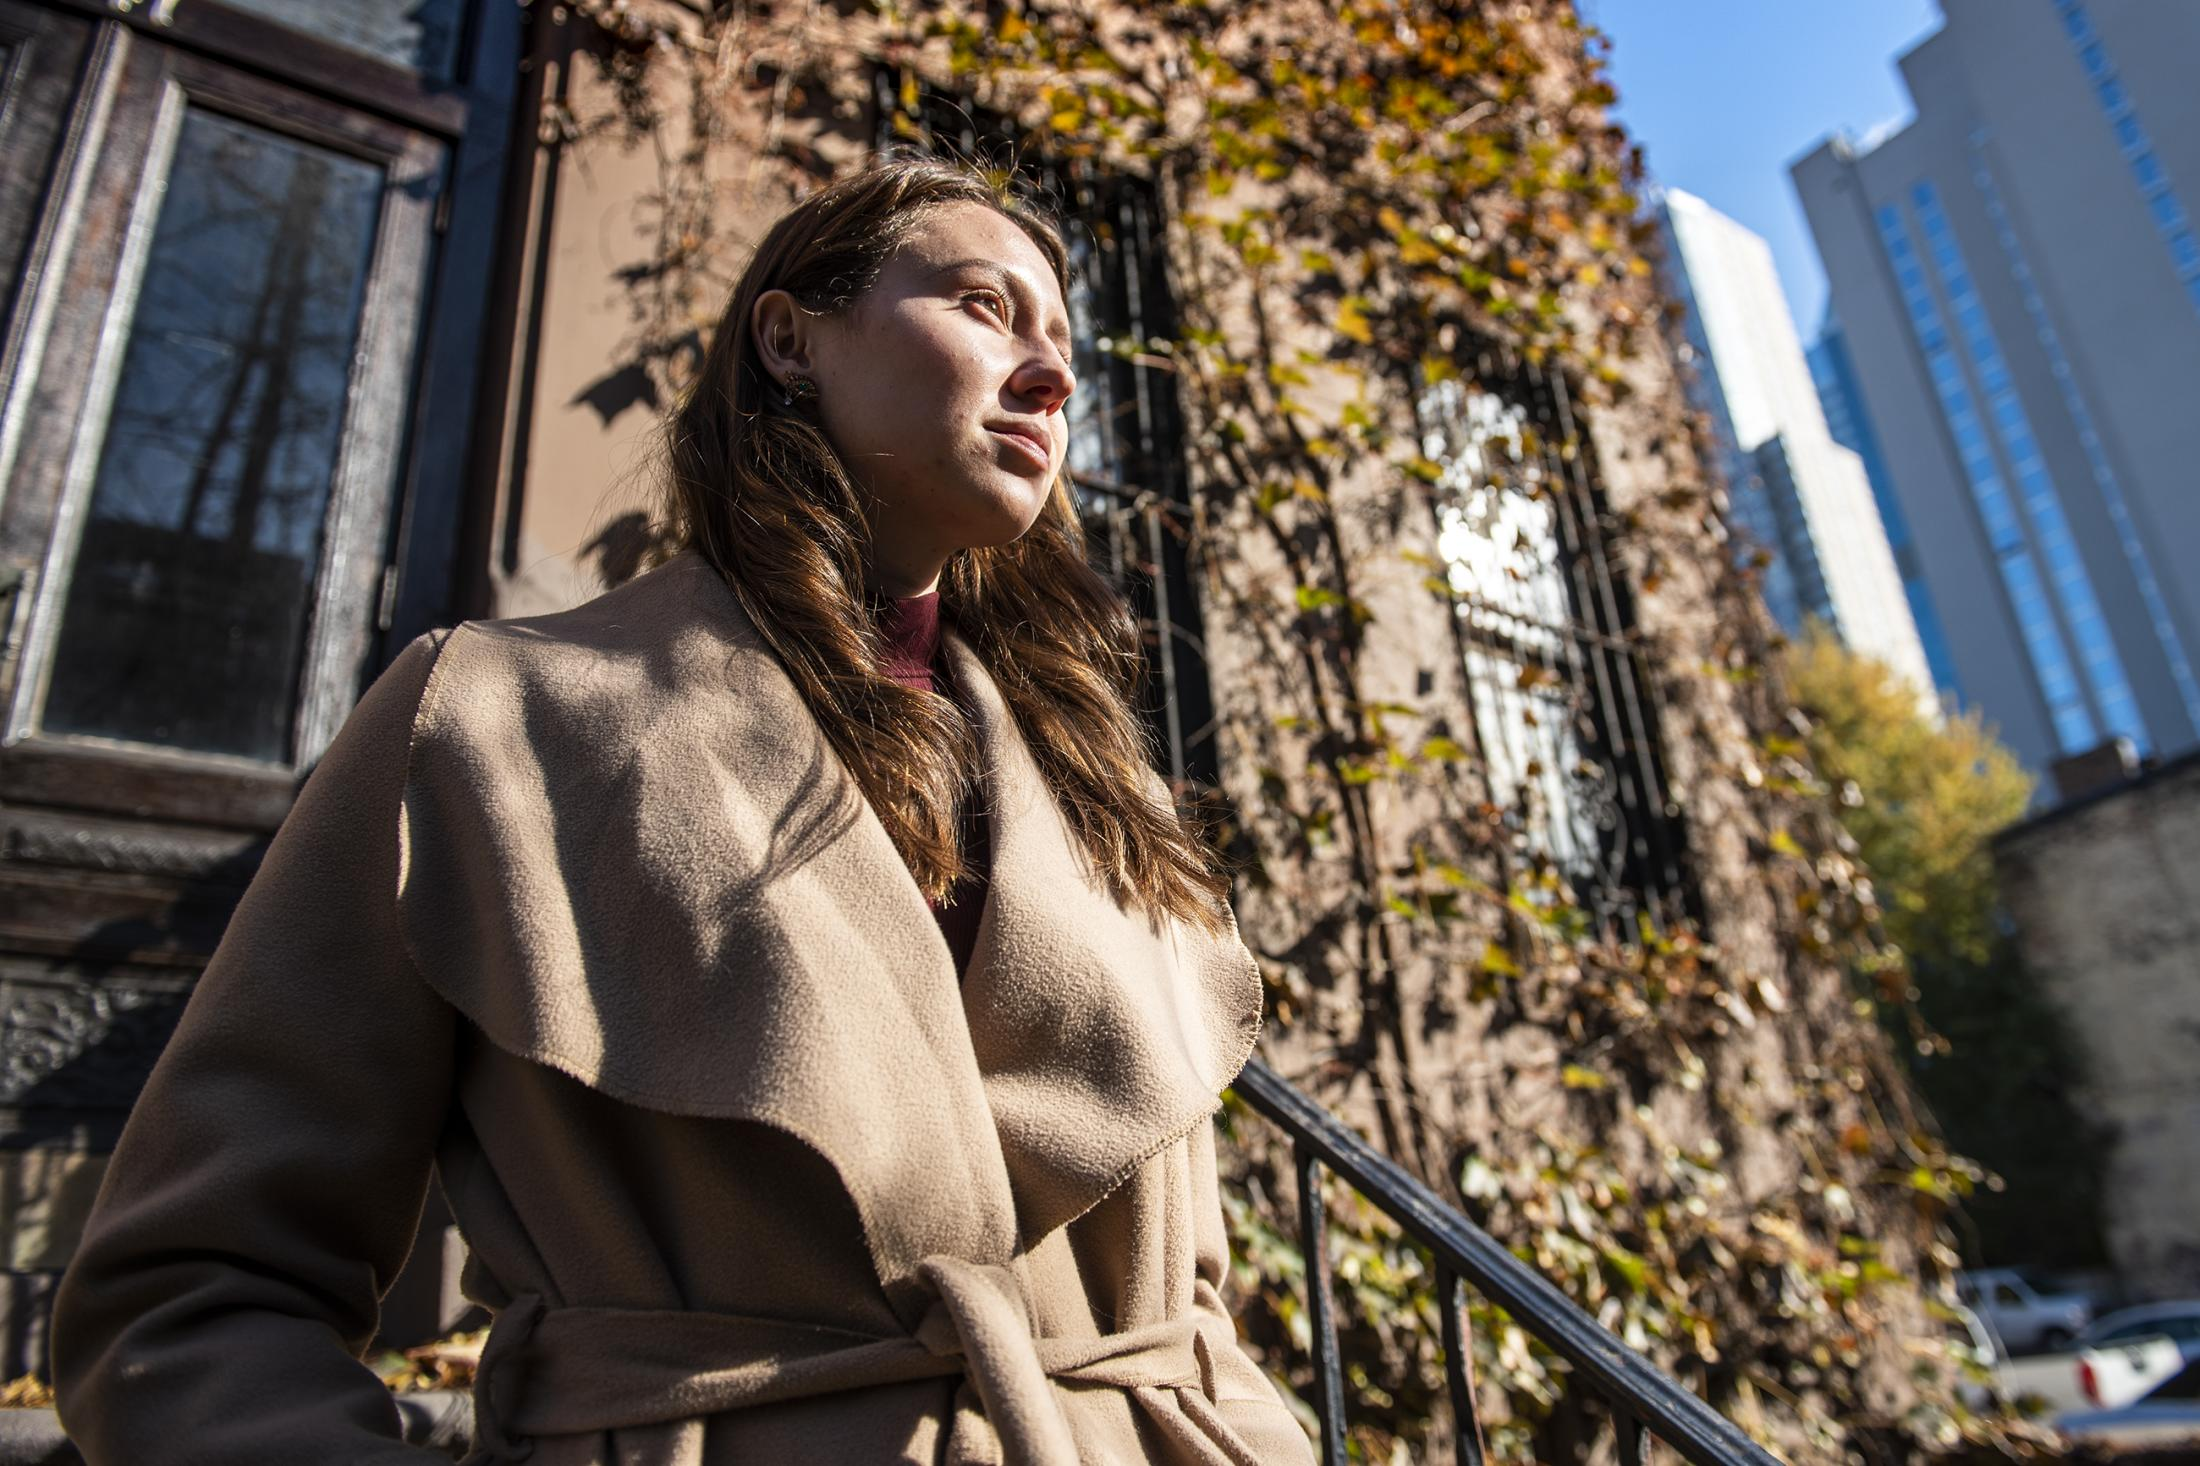 Madison Kozco, 25, sewing technician at Parsons School of Design, stands on a nearby stair of her apartment in Manhattan, New York, NY, on Friday, Nov. 15, 2019. She was a former student at PAFA who reported her rape to campus authorities in early 2016.